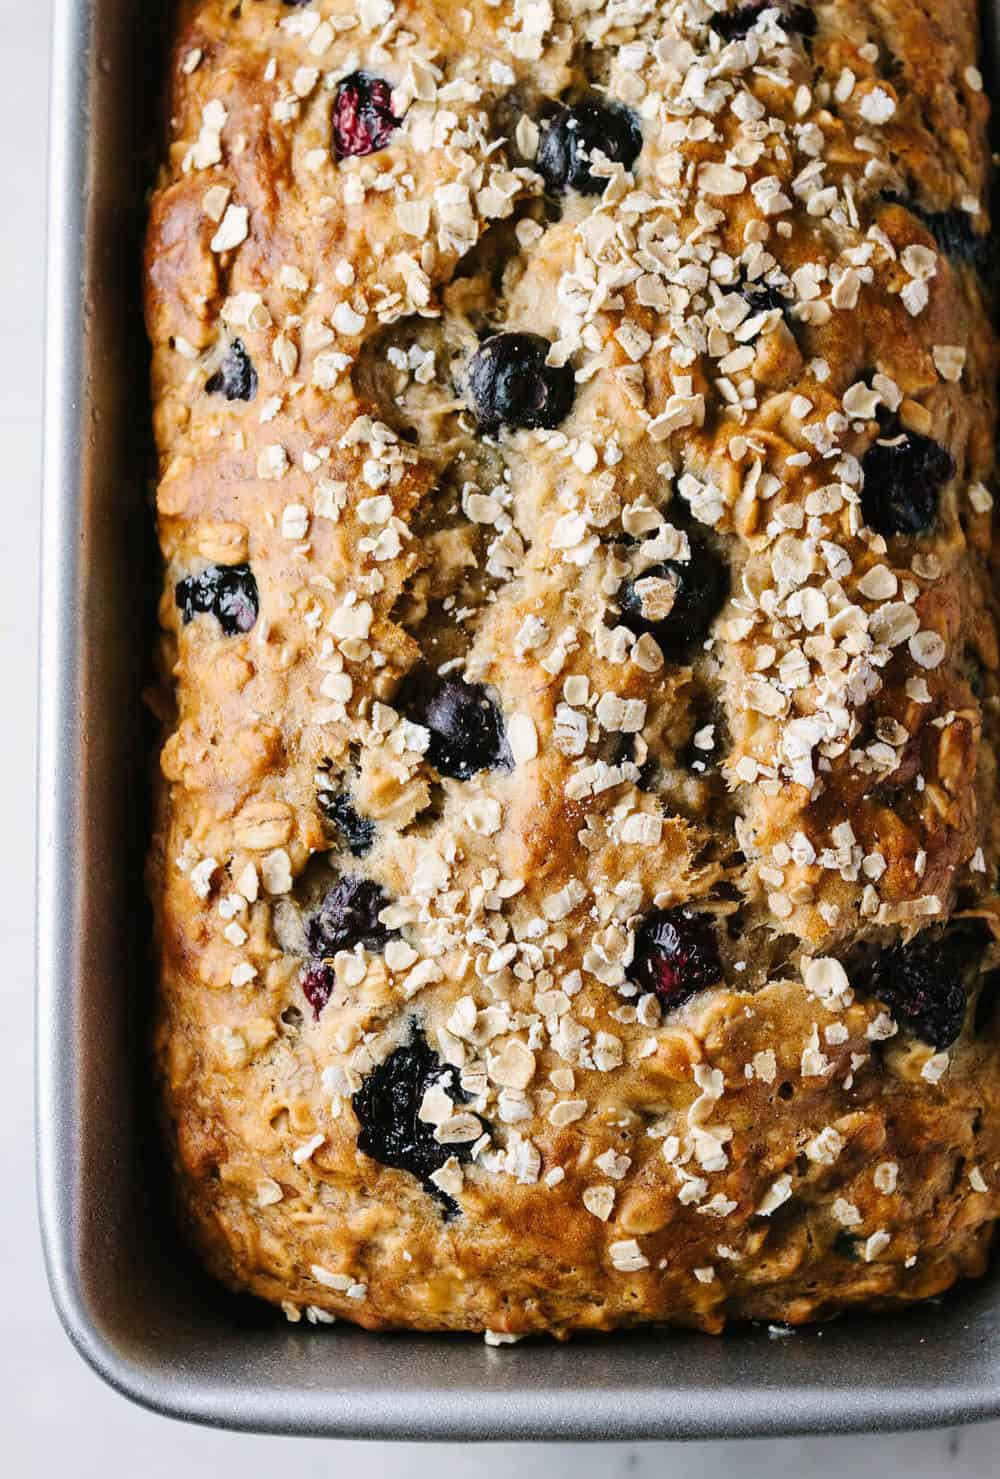 Vegan Blueberry Banana Oat Bread The Simple Veganista